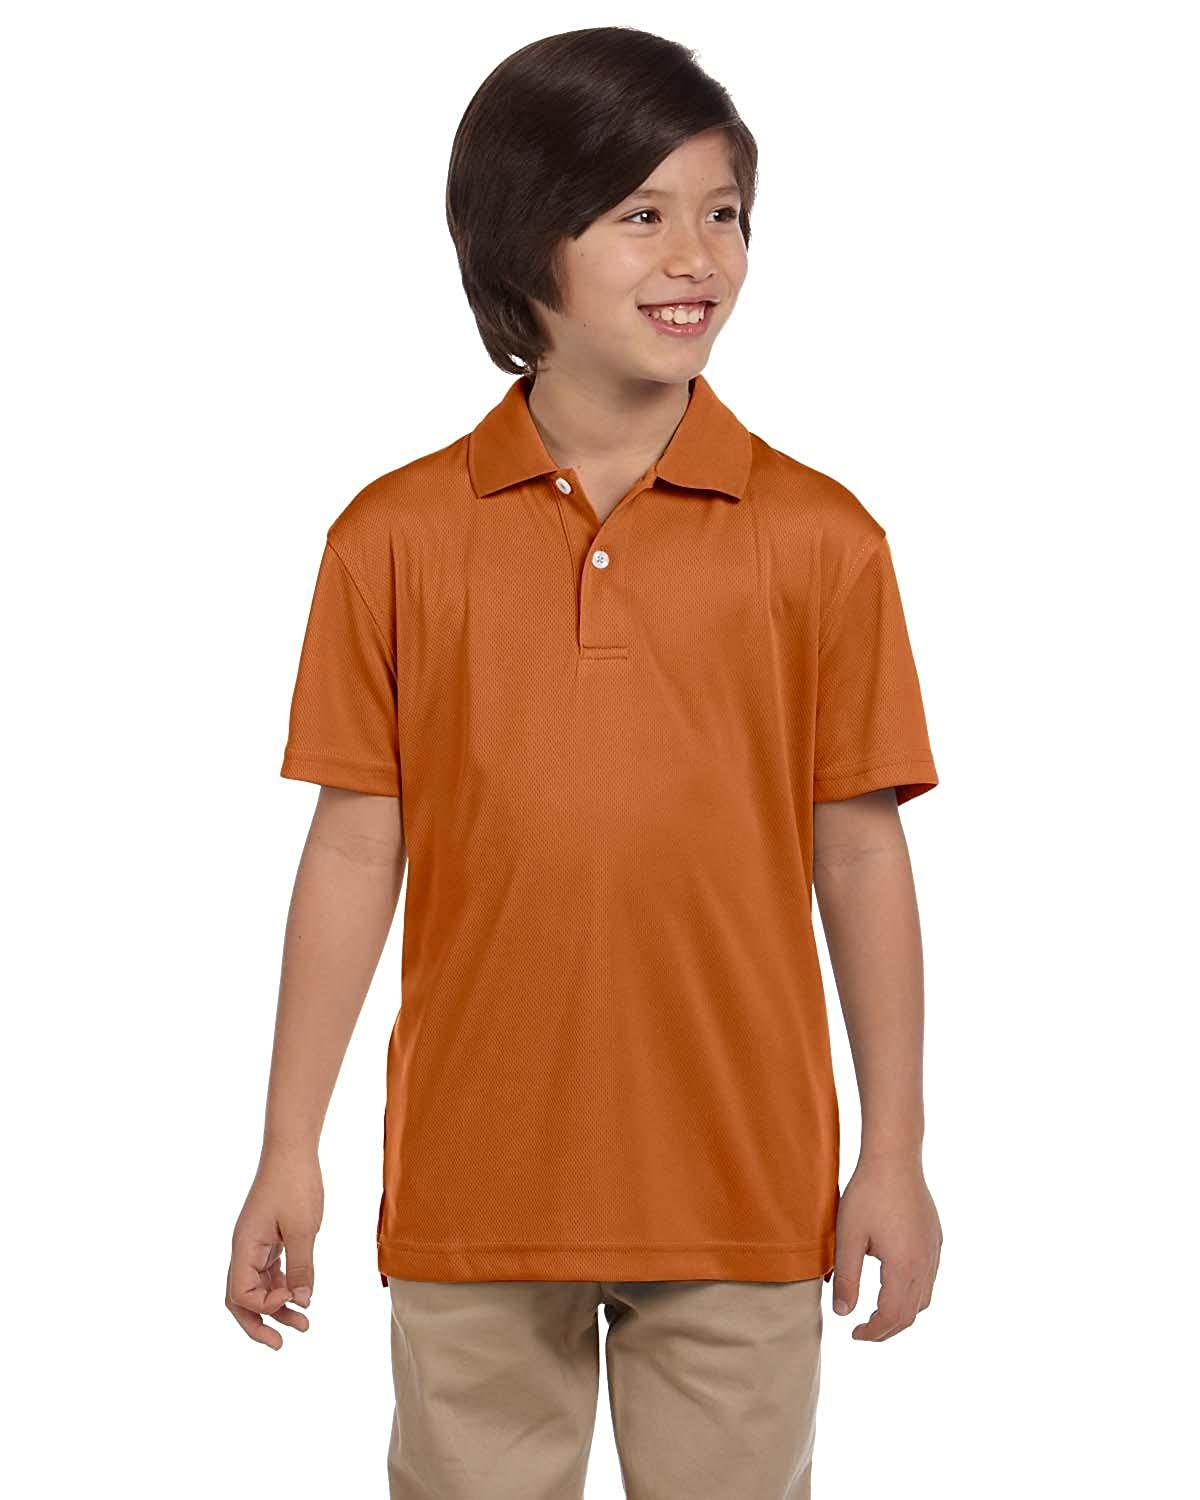 Harriton Youth 3.5 oz Double Mesh Sport ShirtS TEXAS ORANGE M353Y